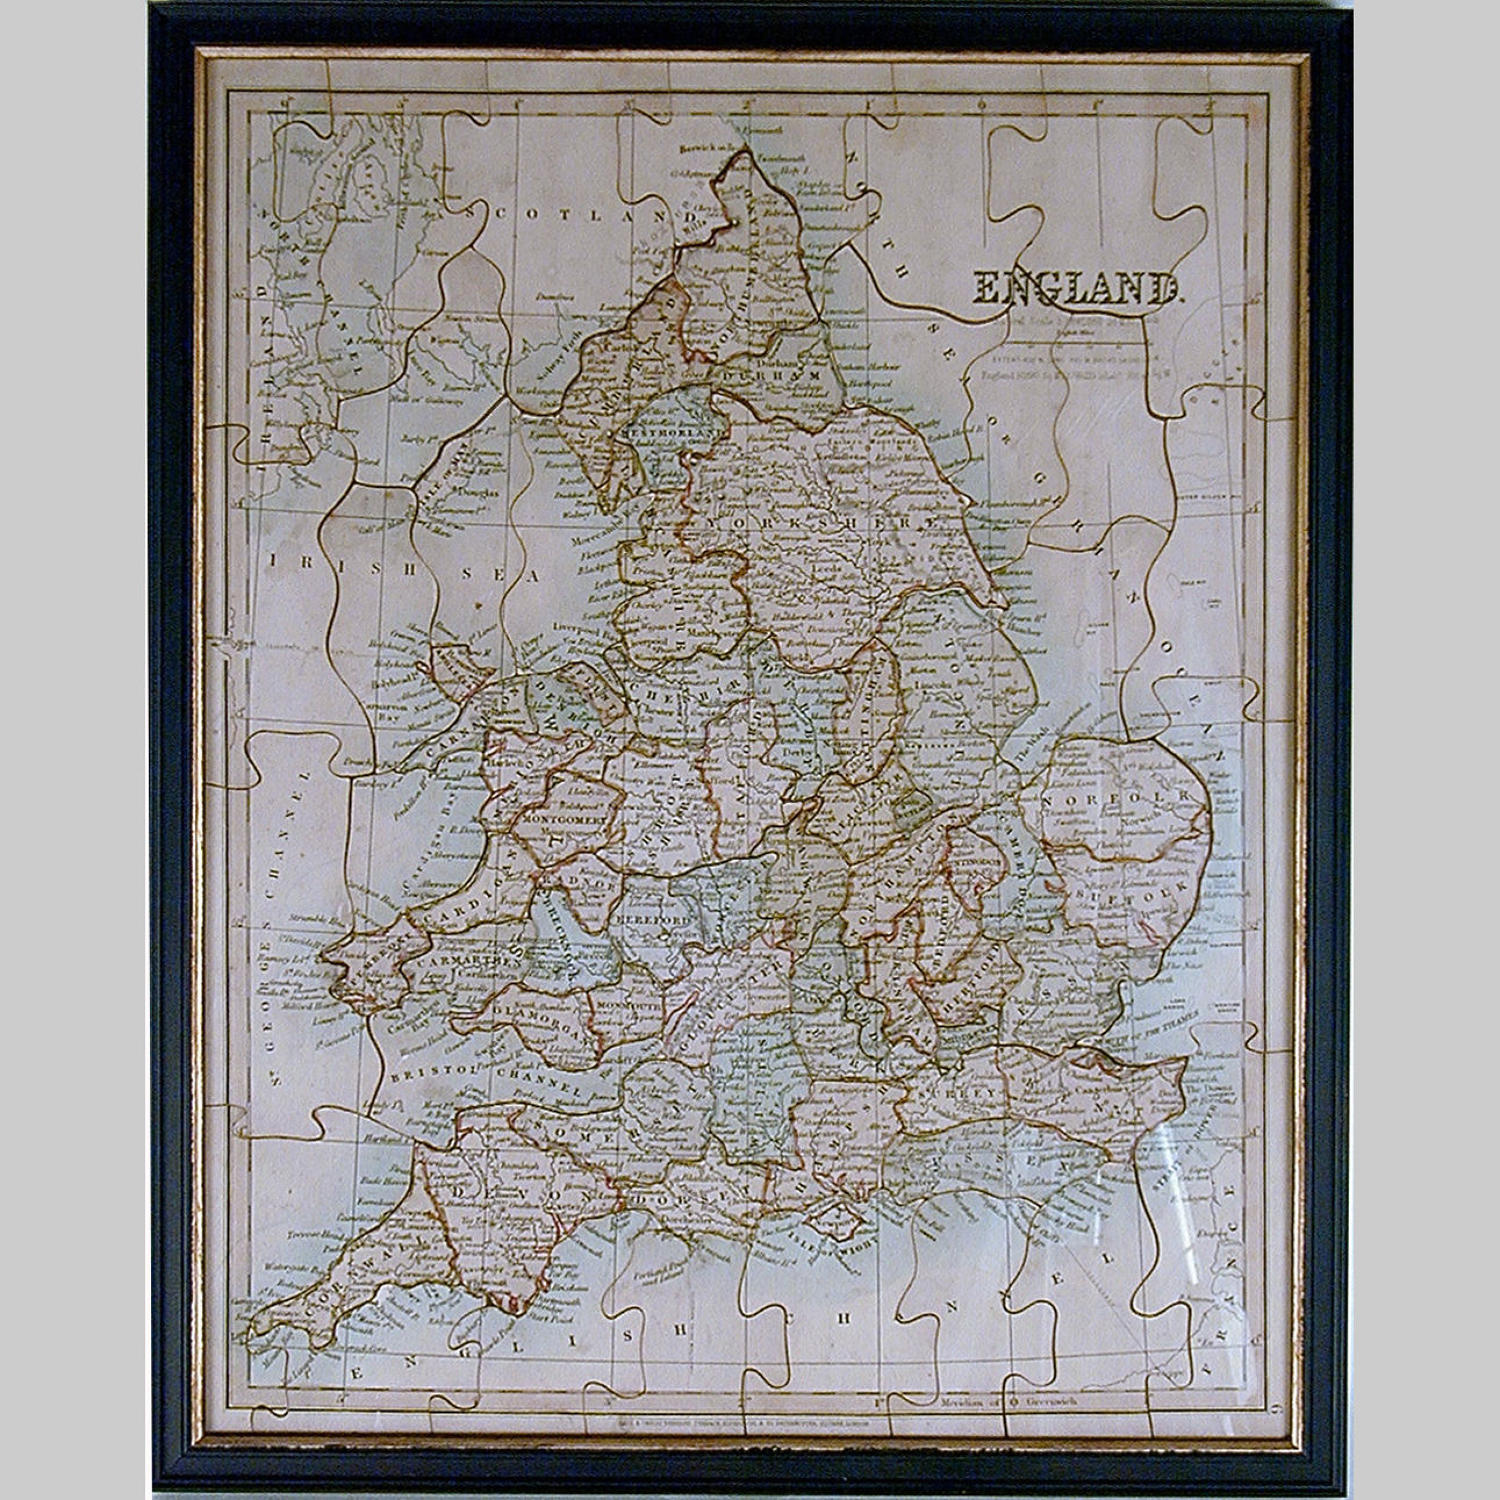 19th century boxed jigsaw dissection map of England